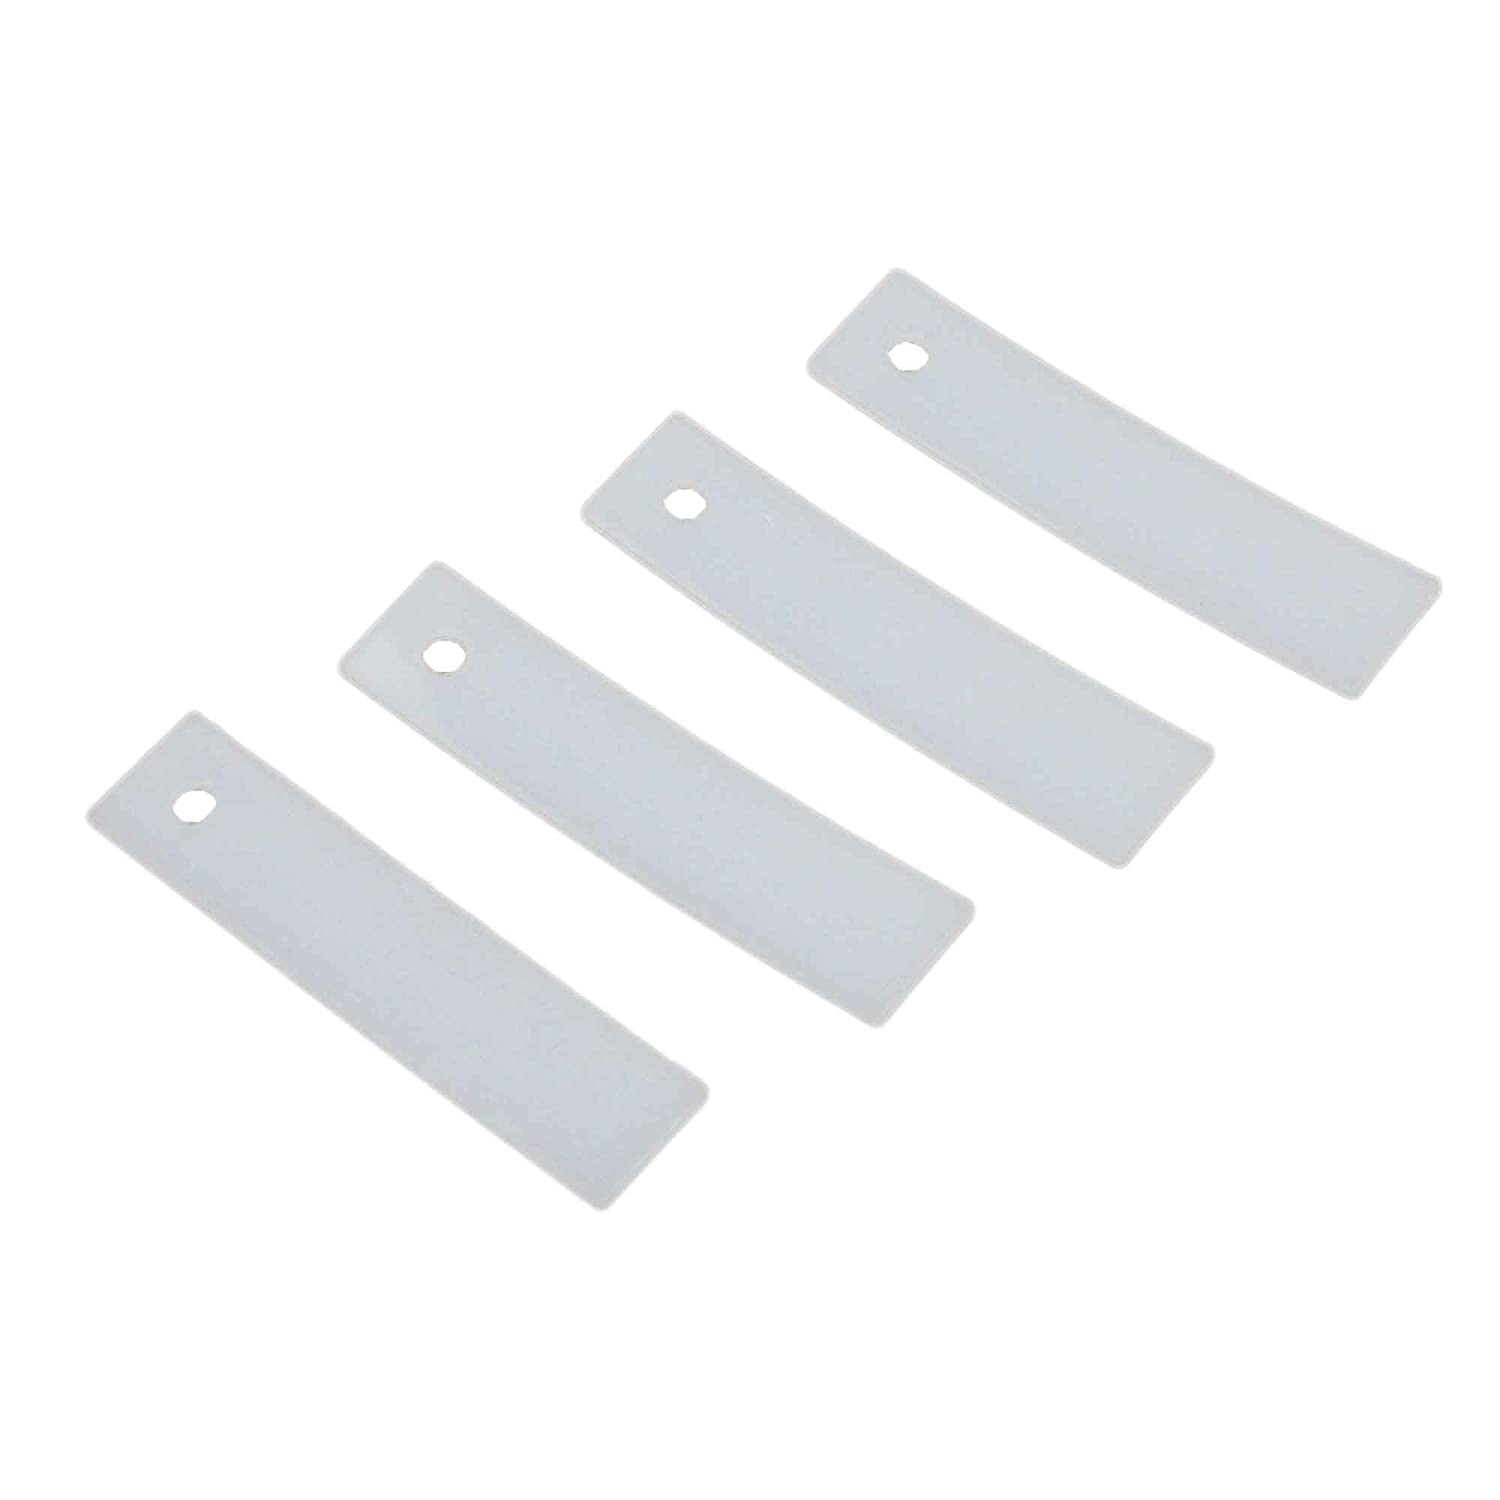 Supplying Demand WE1M333 Dryer Front Drum Slide 4 PC Kit WE1M504, PS755842